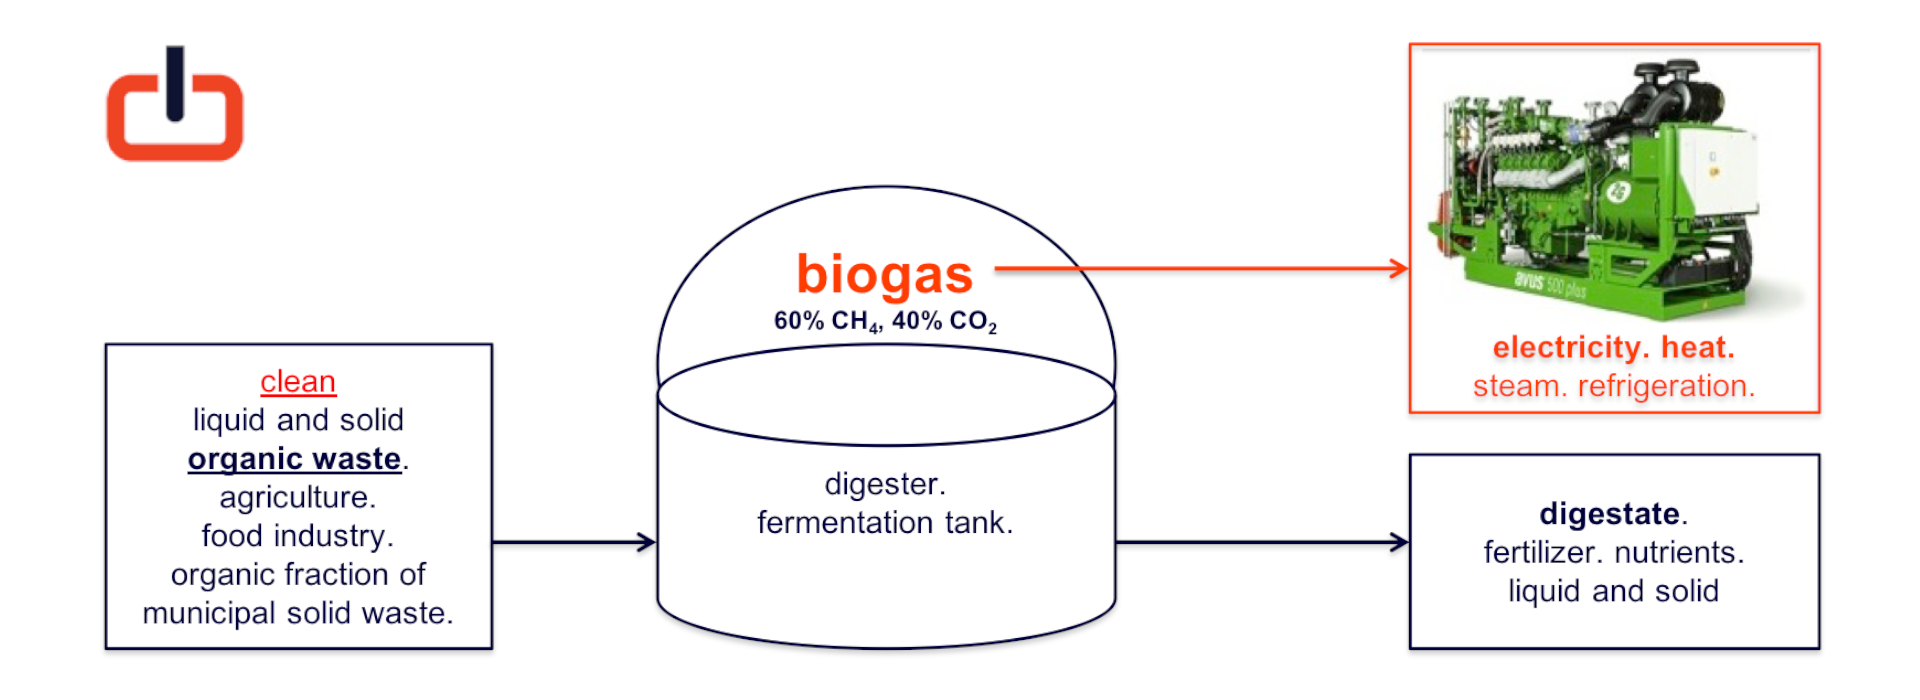 generizon schema anaerobic digestion.